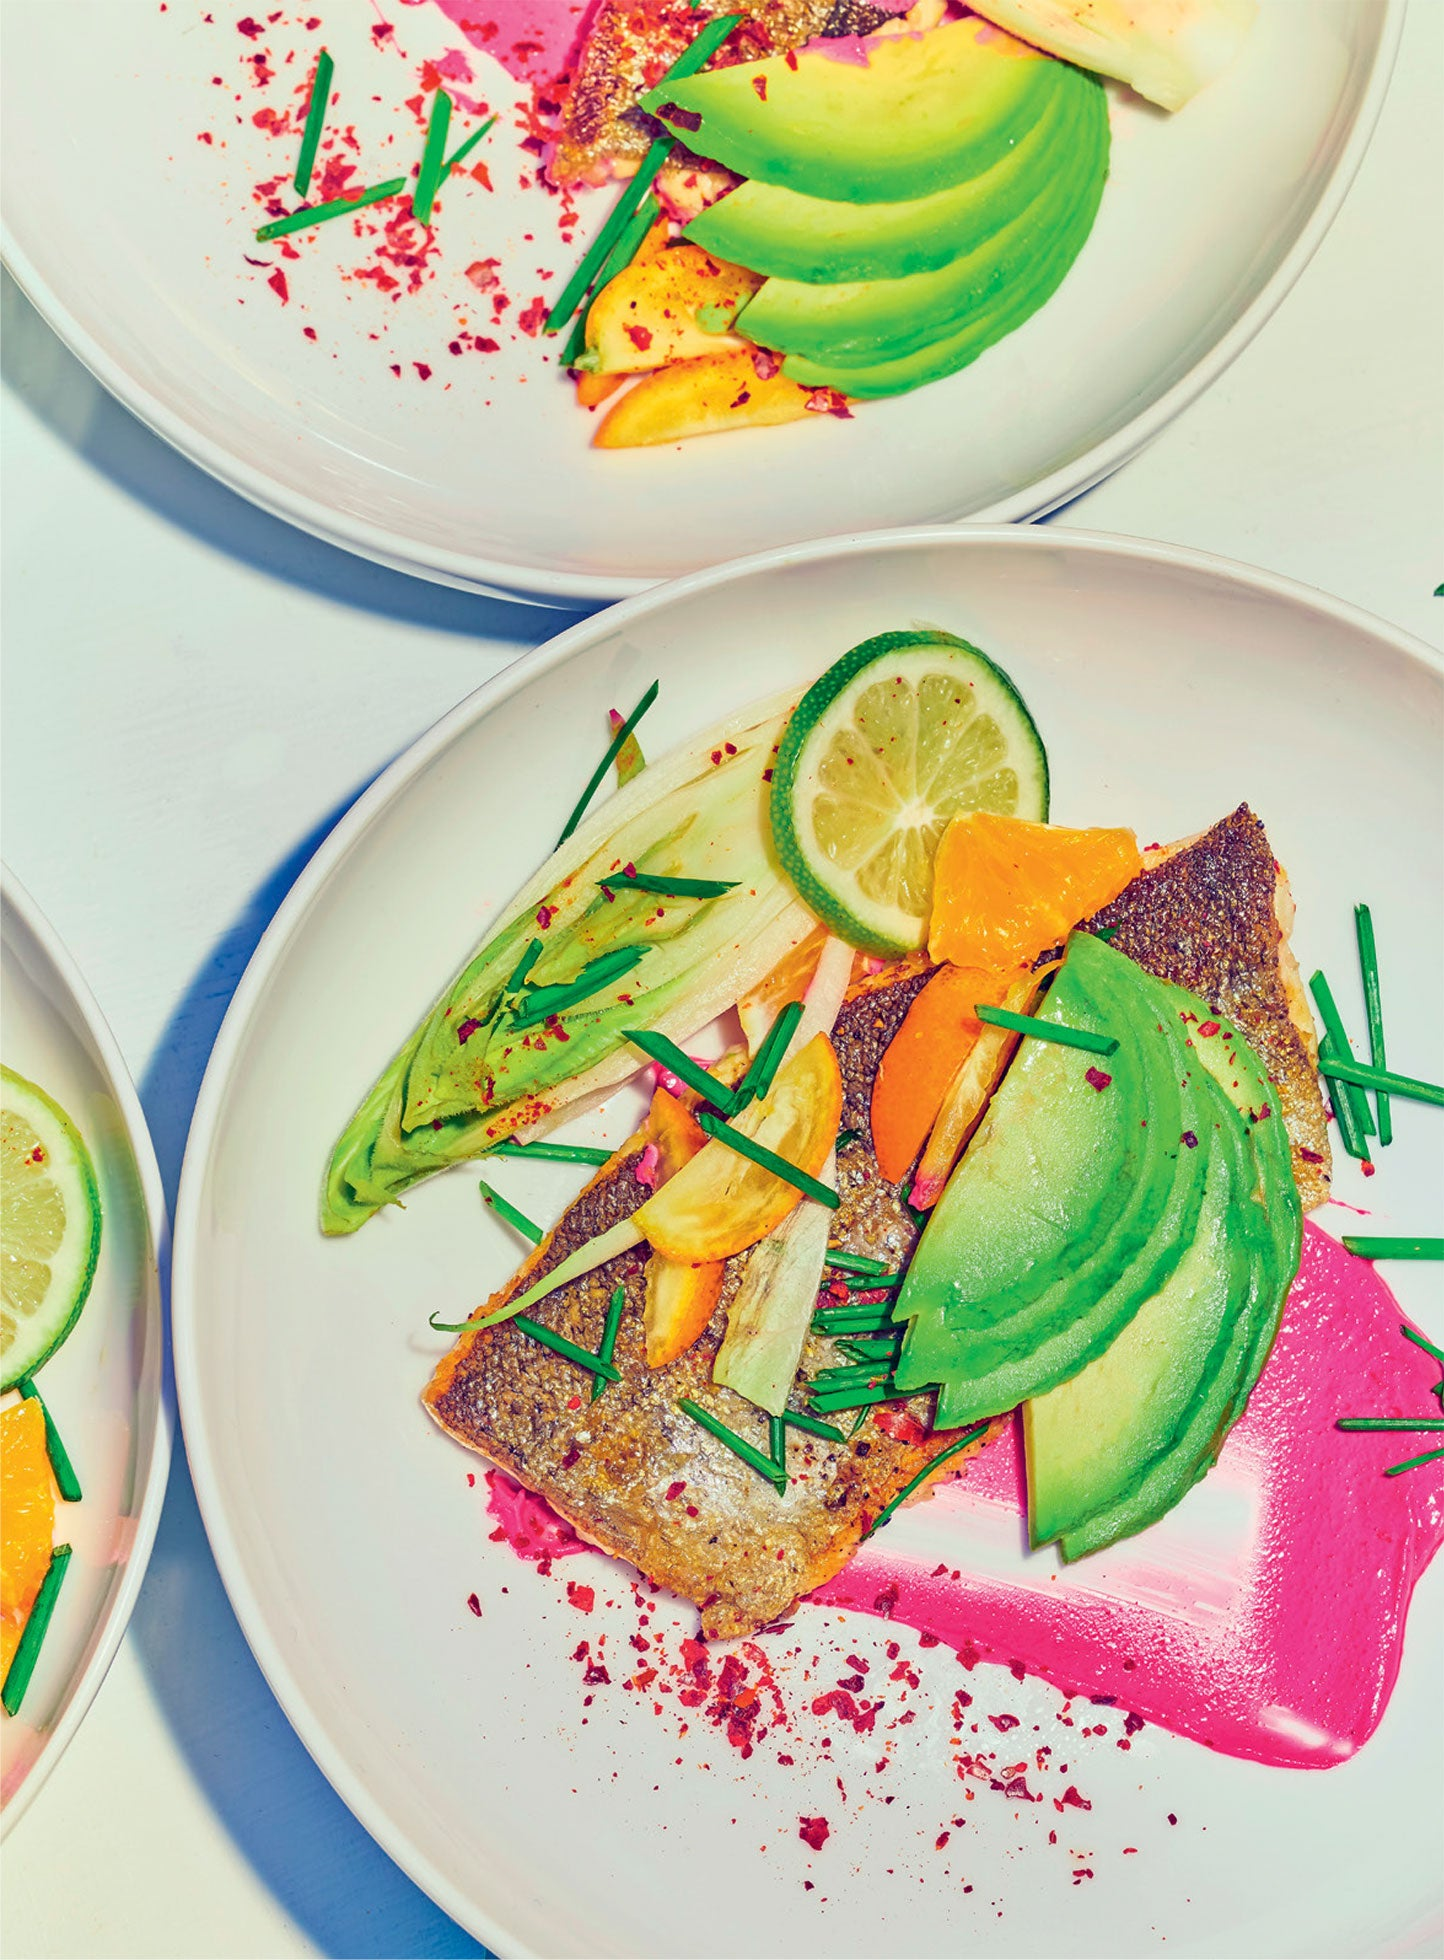 Story On A Plate The Delicate Art Of Plating Dishes Gestalten Eu Shop